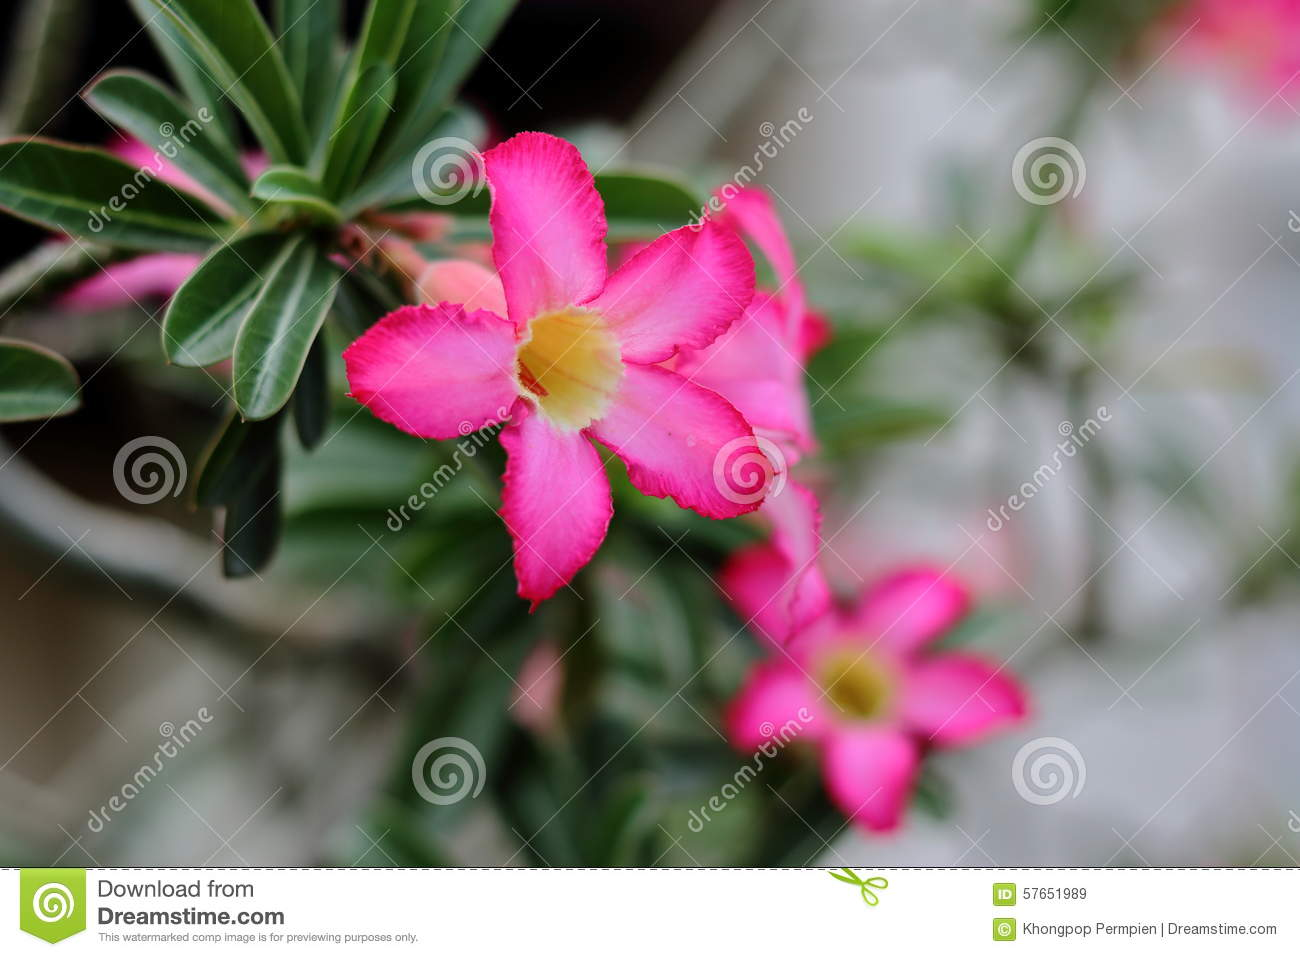 Impala Lily blooming